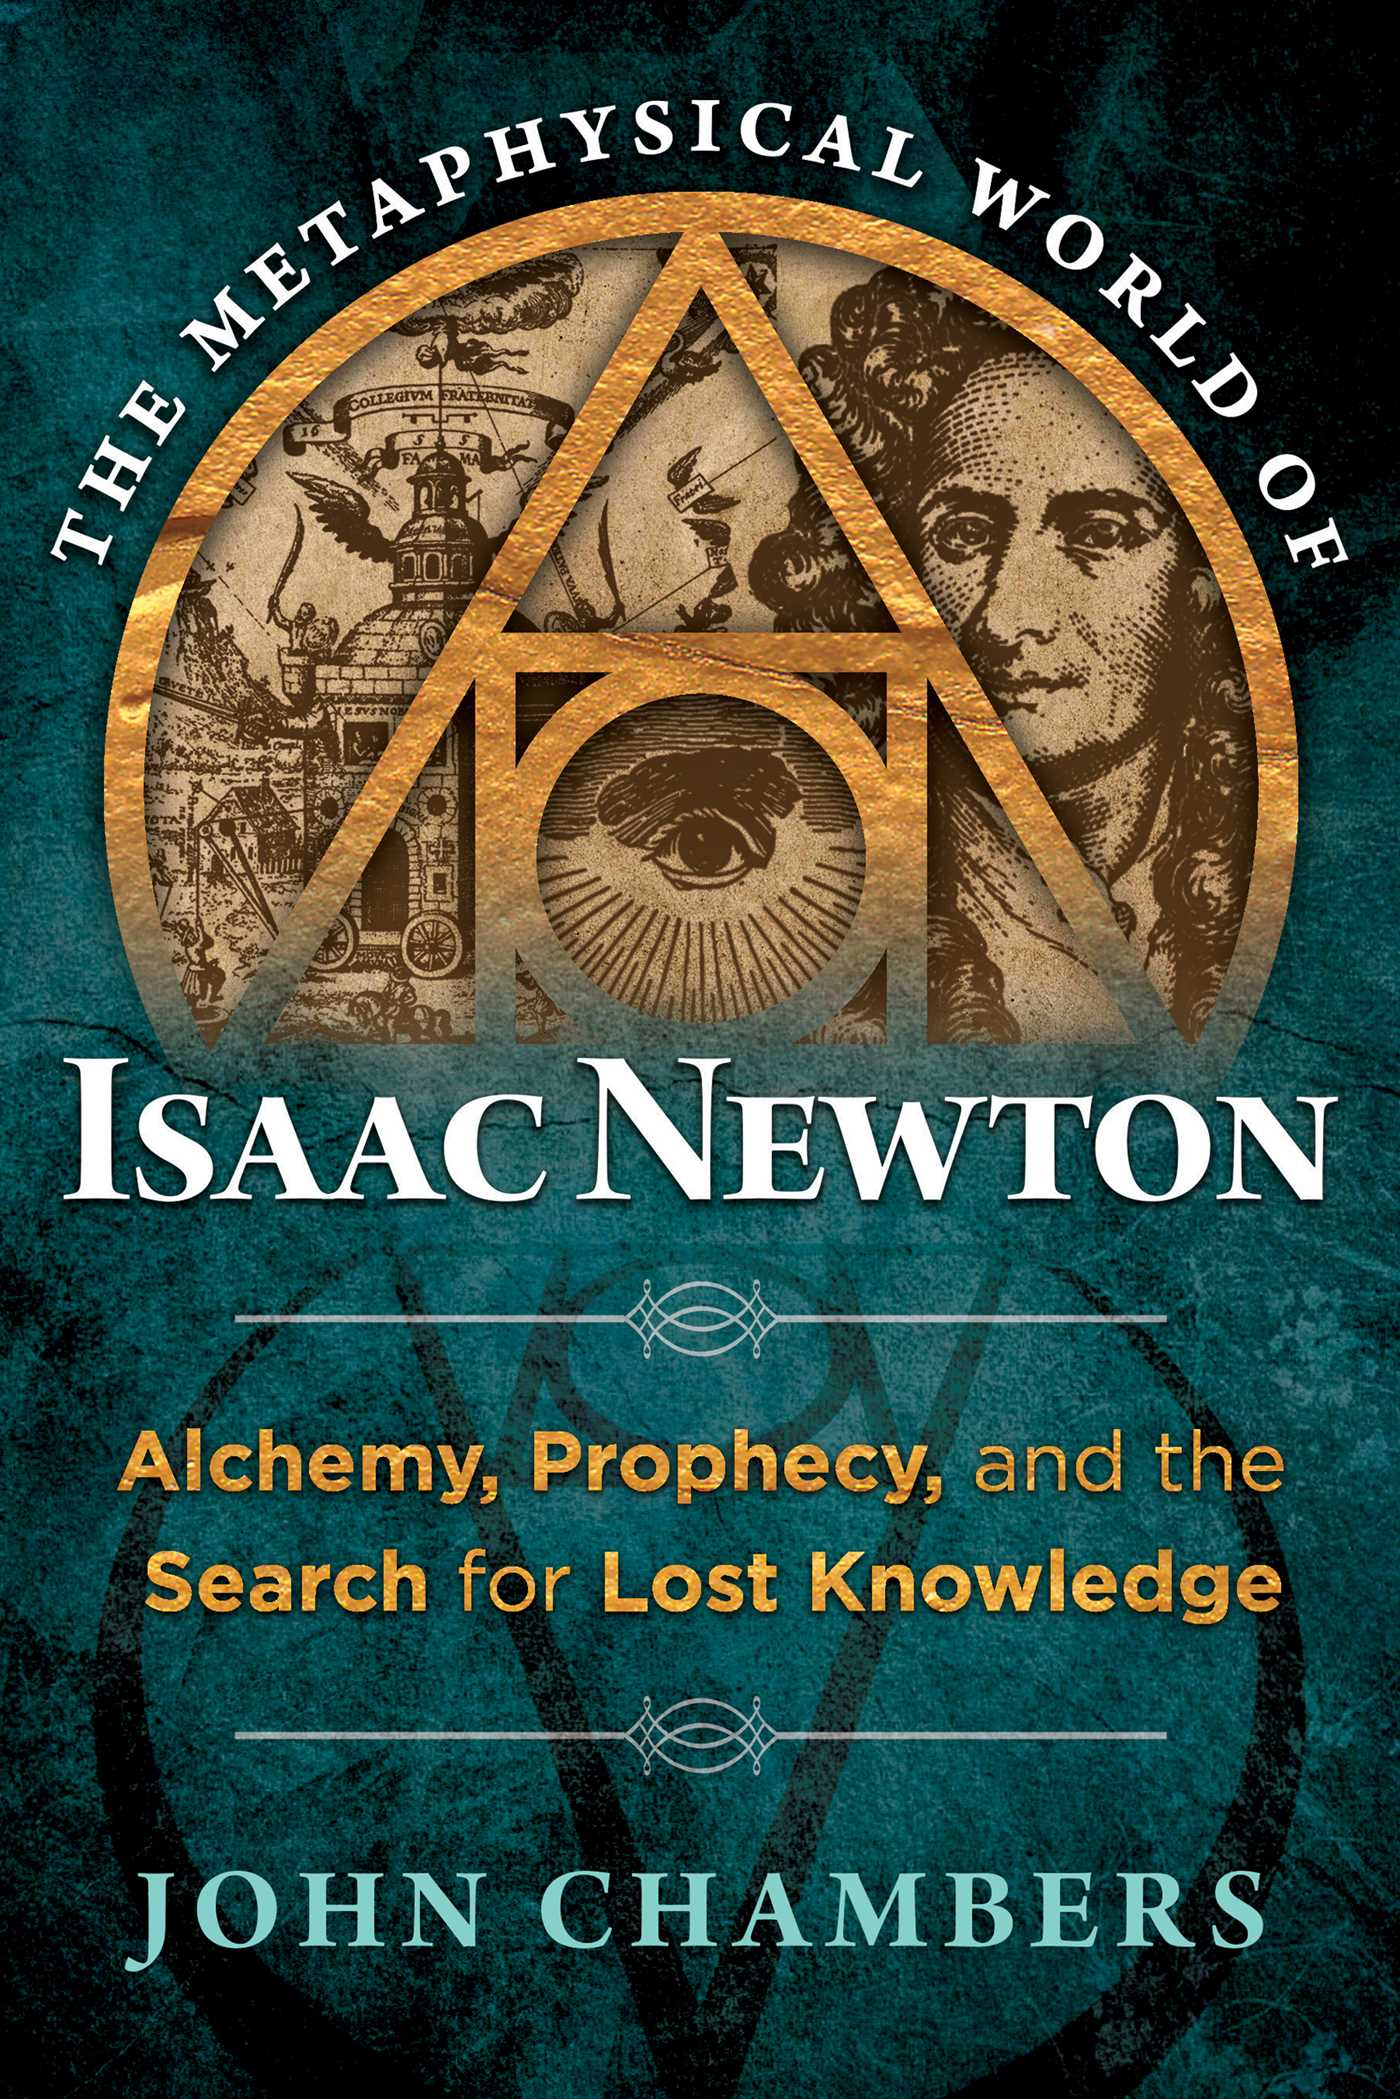 The metaphysical world of isaac newton 9781620552056 hr